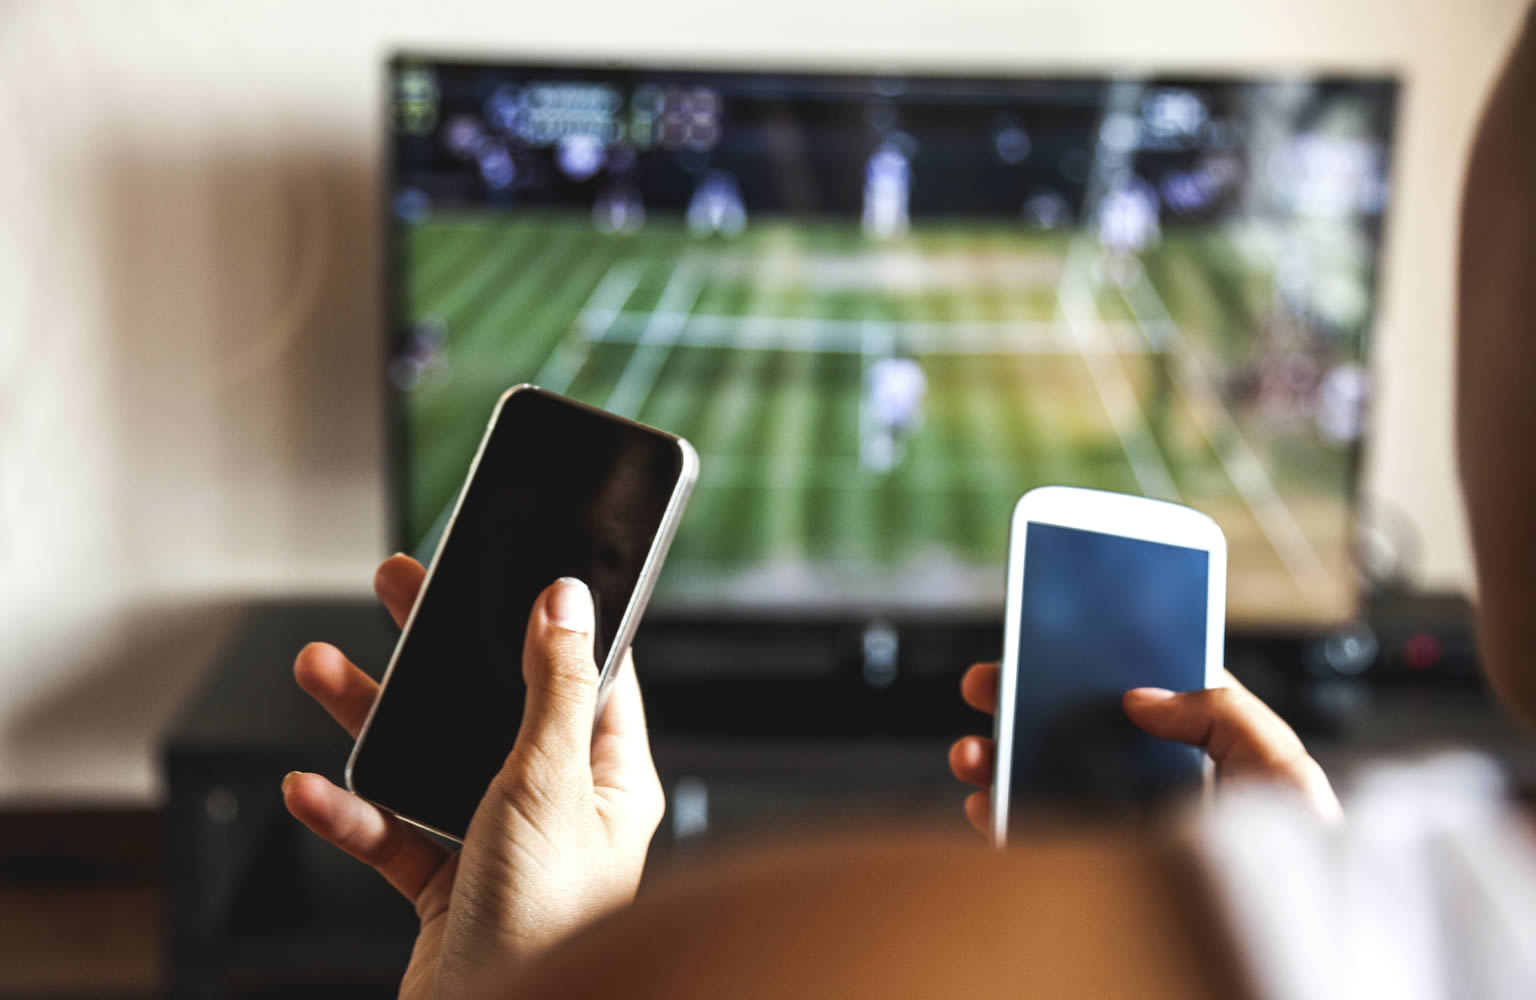 Two people in front of television showing tennis match in progress and both are holding mobile phones in front of them.